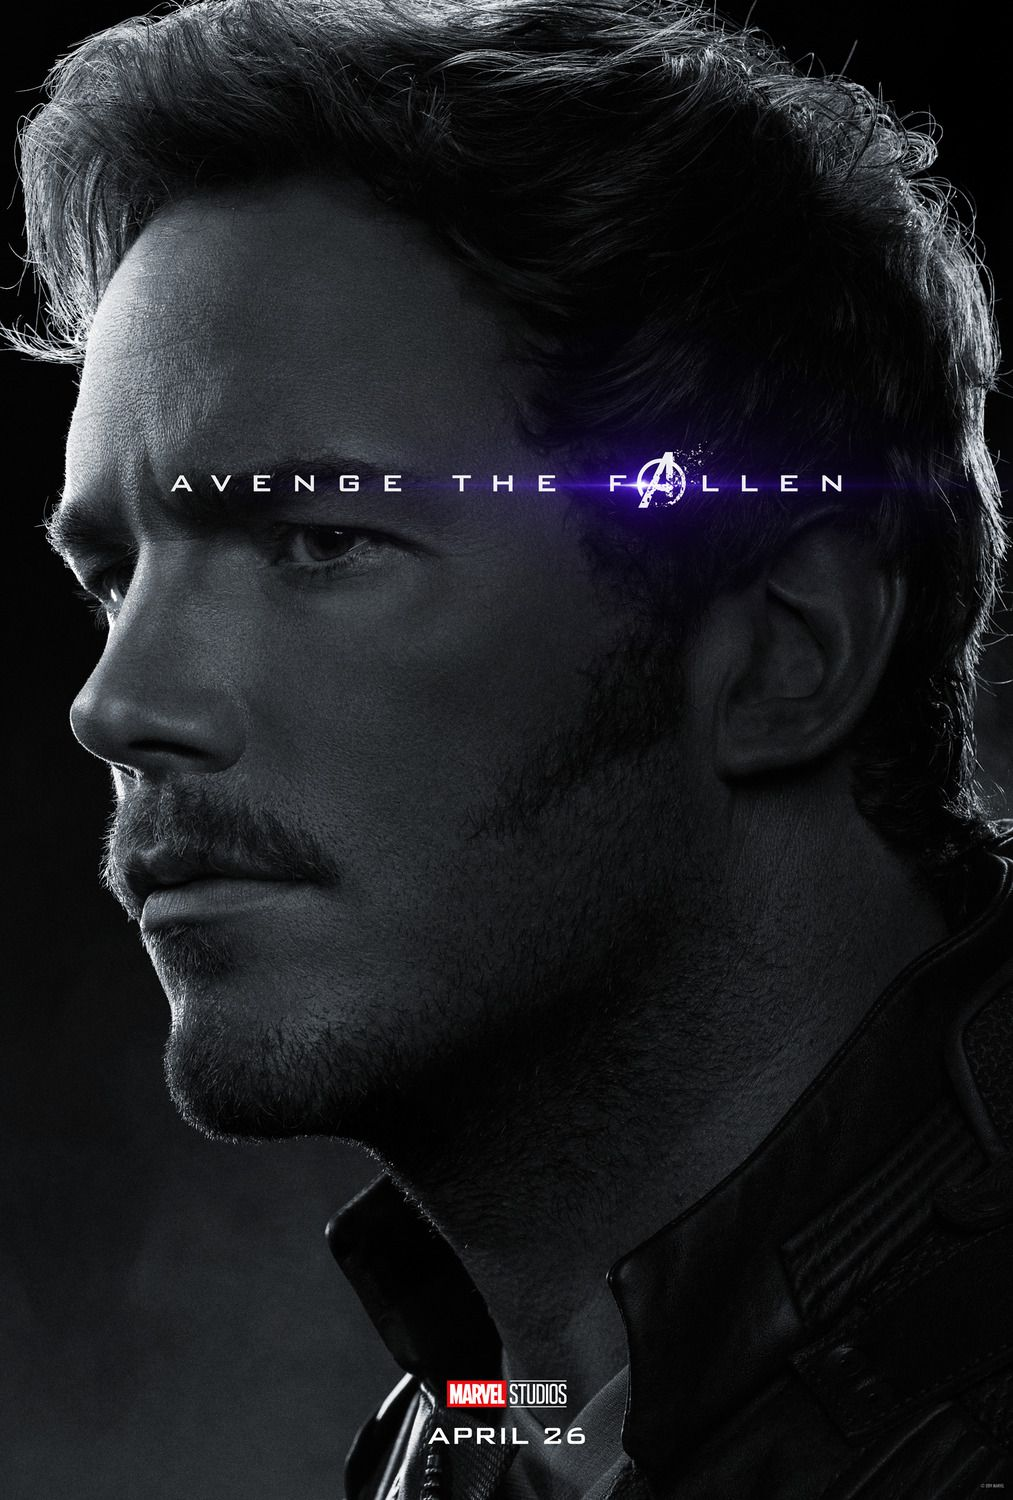 Chris Pratt as Peter Quill Star-Lord